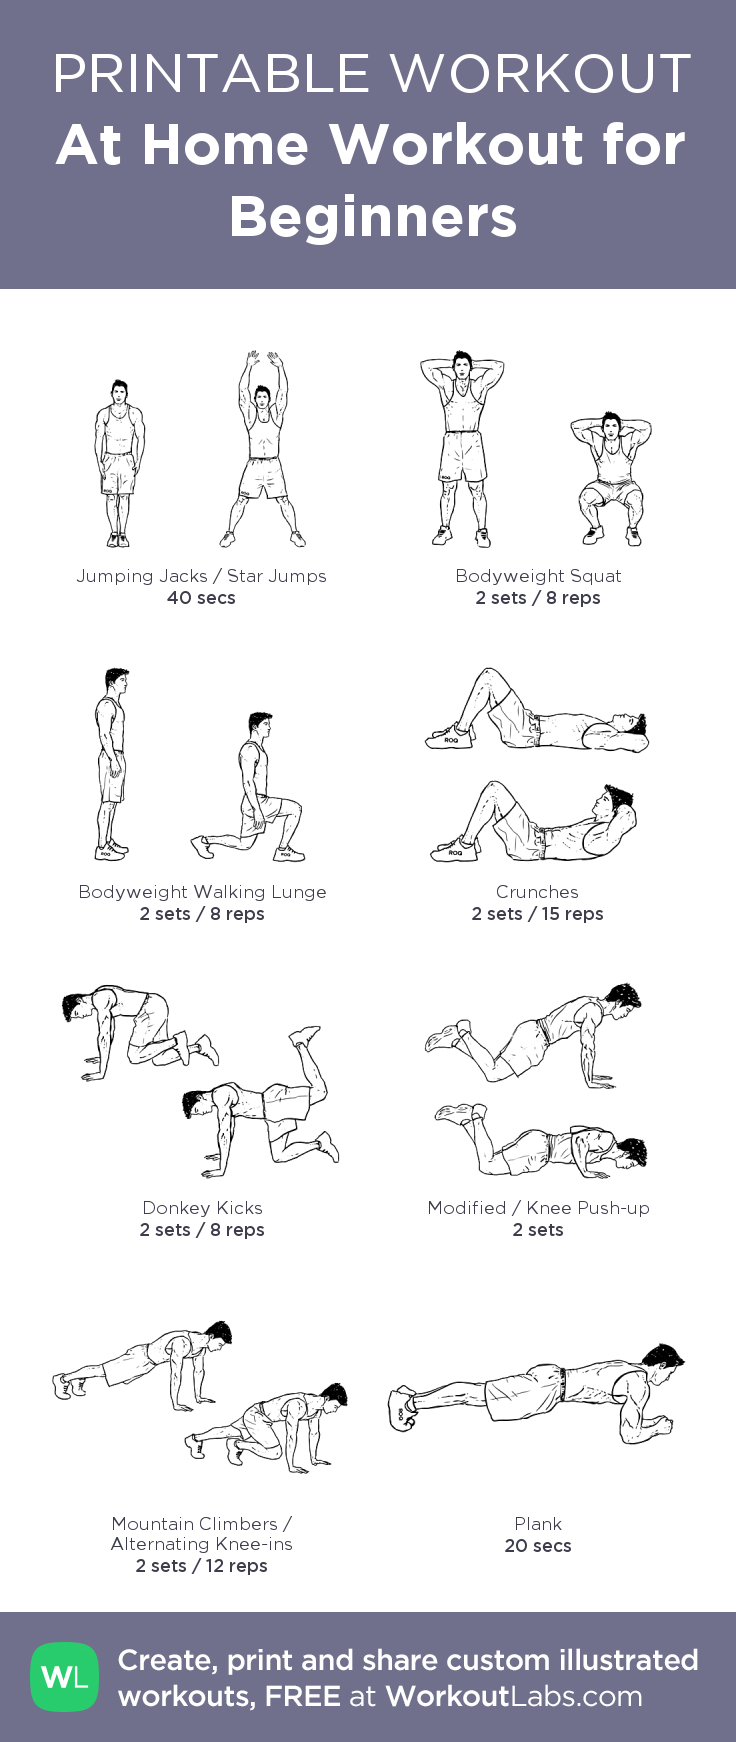 At Home Workout For Beginners My Custom Created WorkoutLabs O Click Through To Download As Printable PDF Customworkout